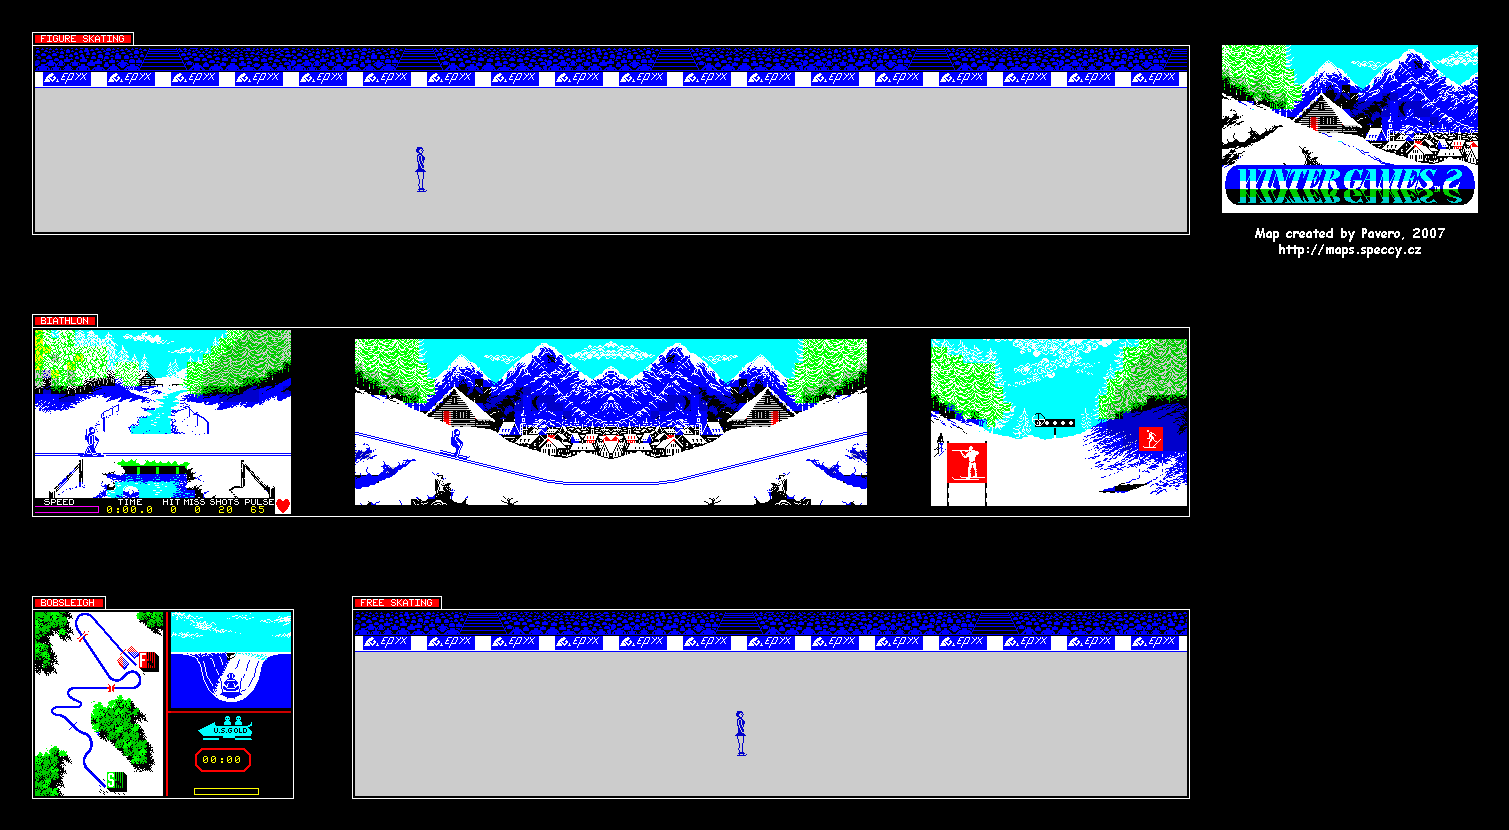 Winter Games 2 - The Map